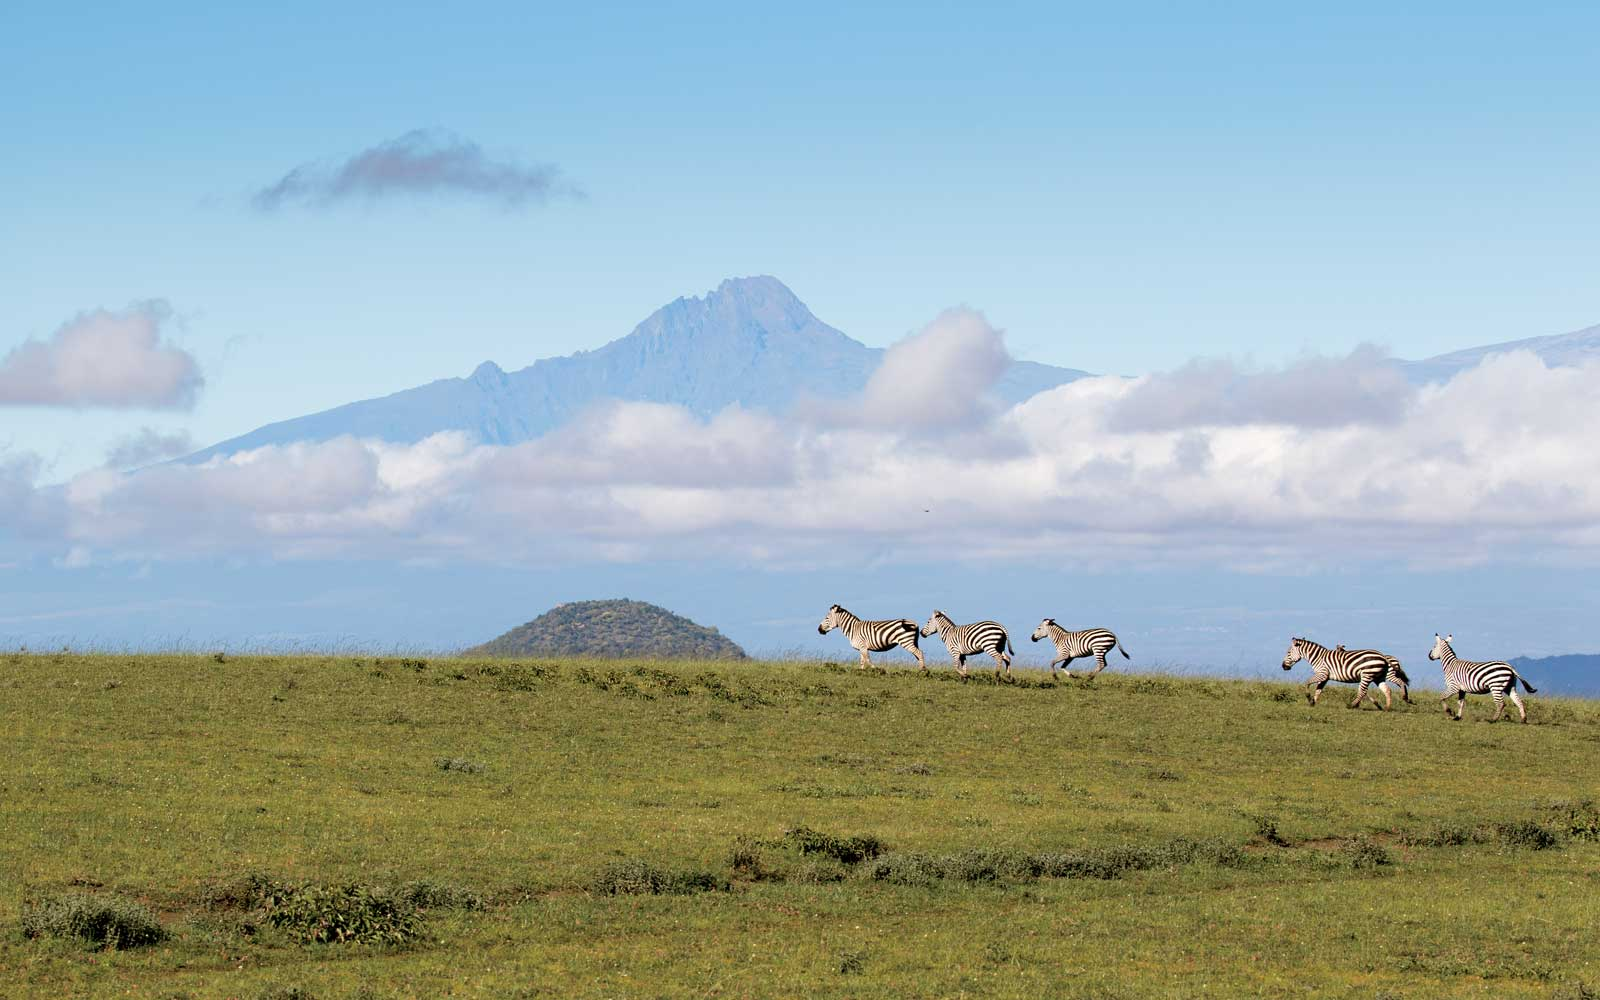 Zebras Running in front of Mt Kilimanjaro, Kenya